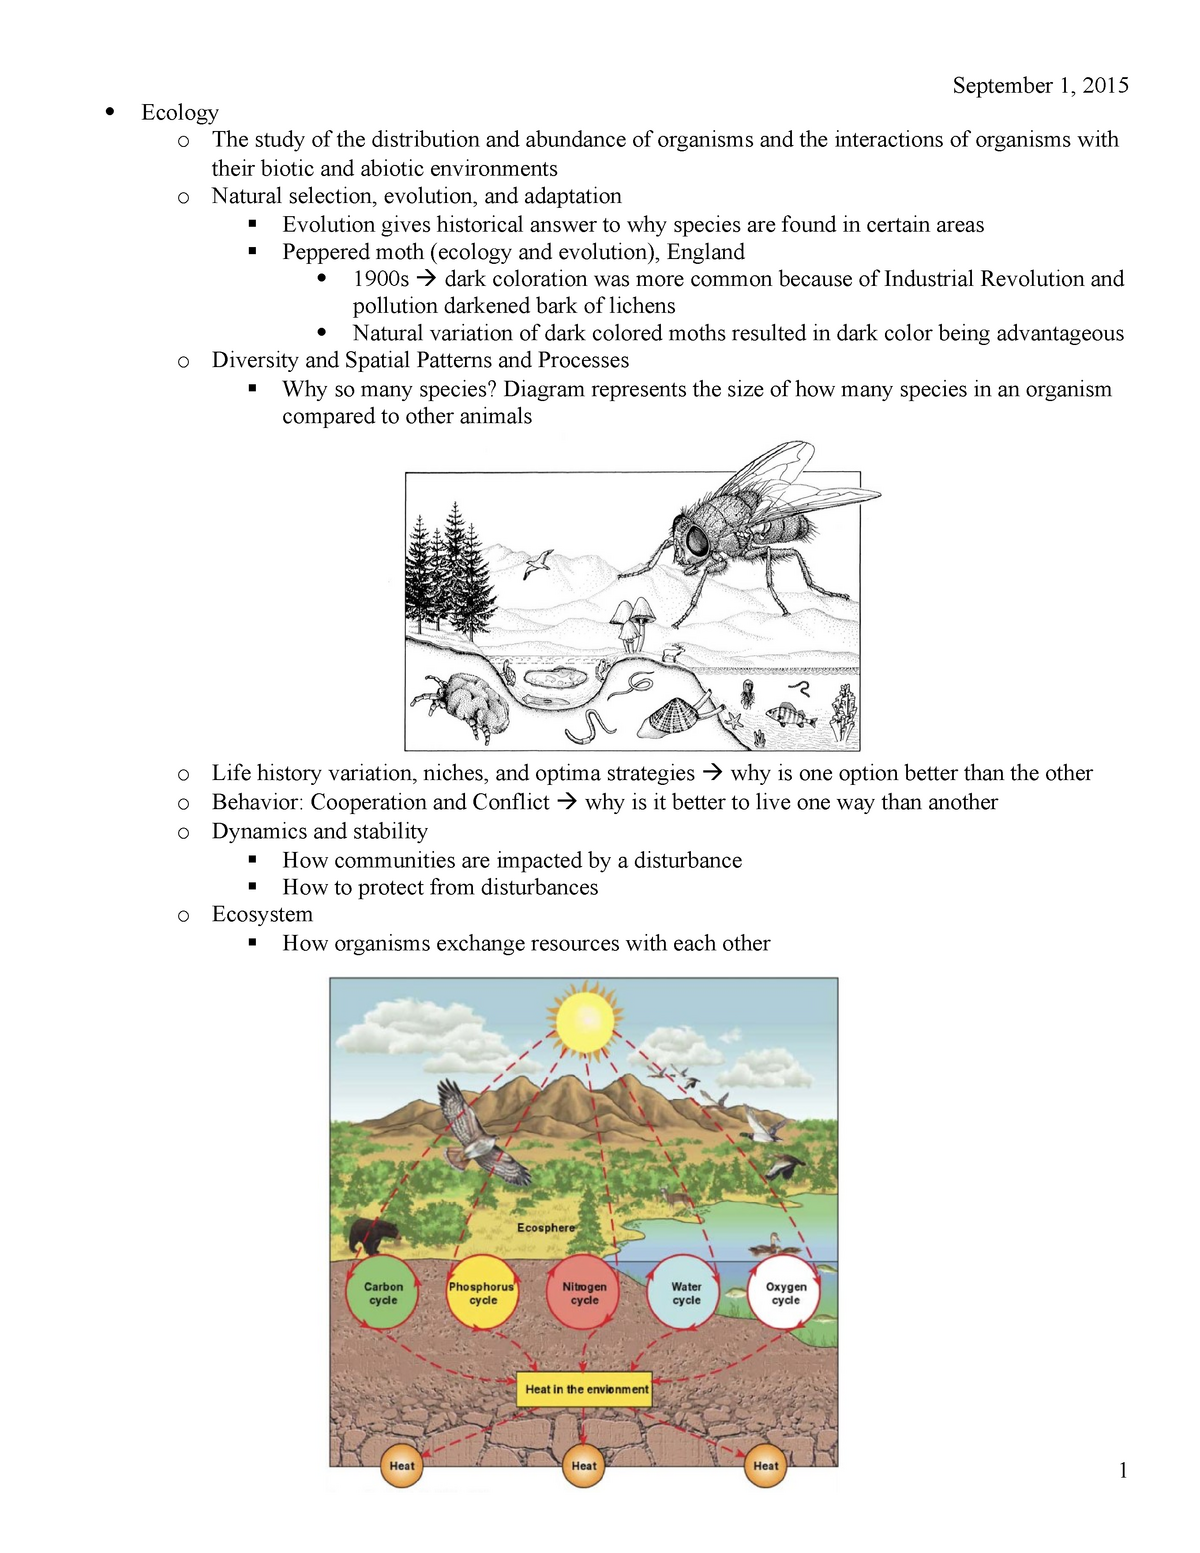 Lecture notes, lecture all - EEB 2244: General Ecology - StuDocu